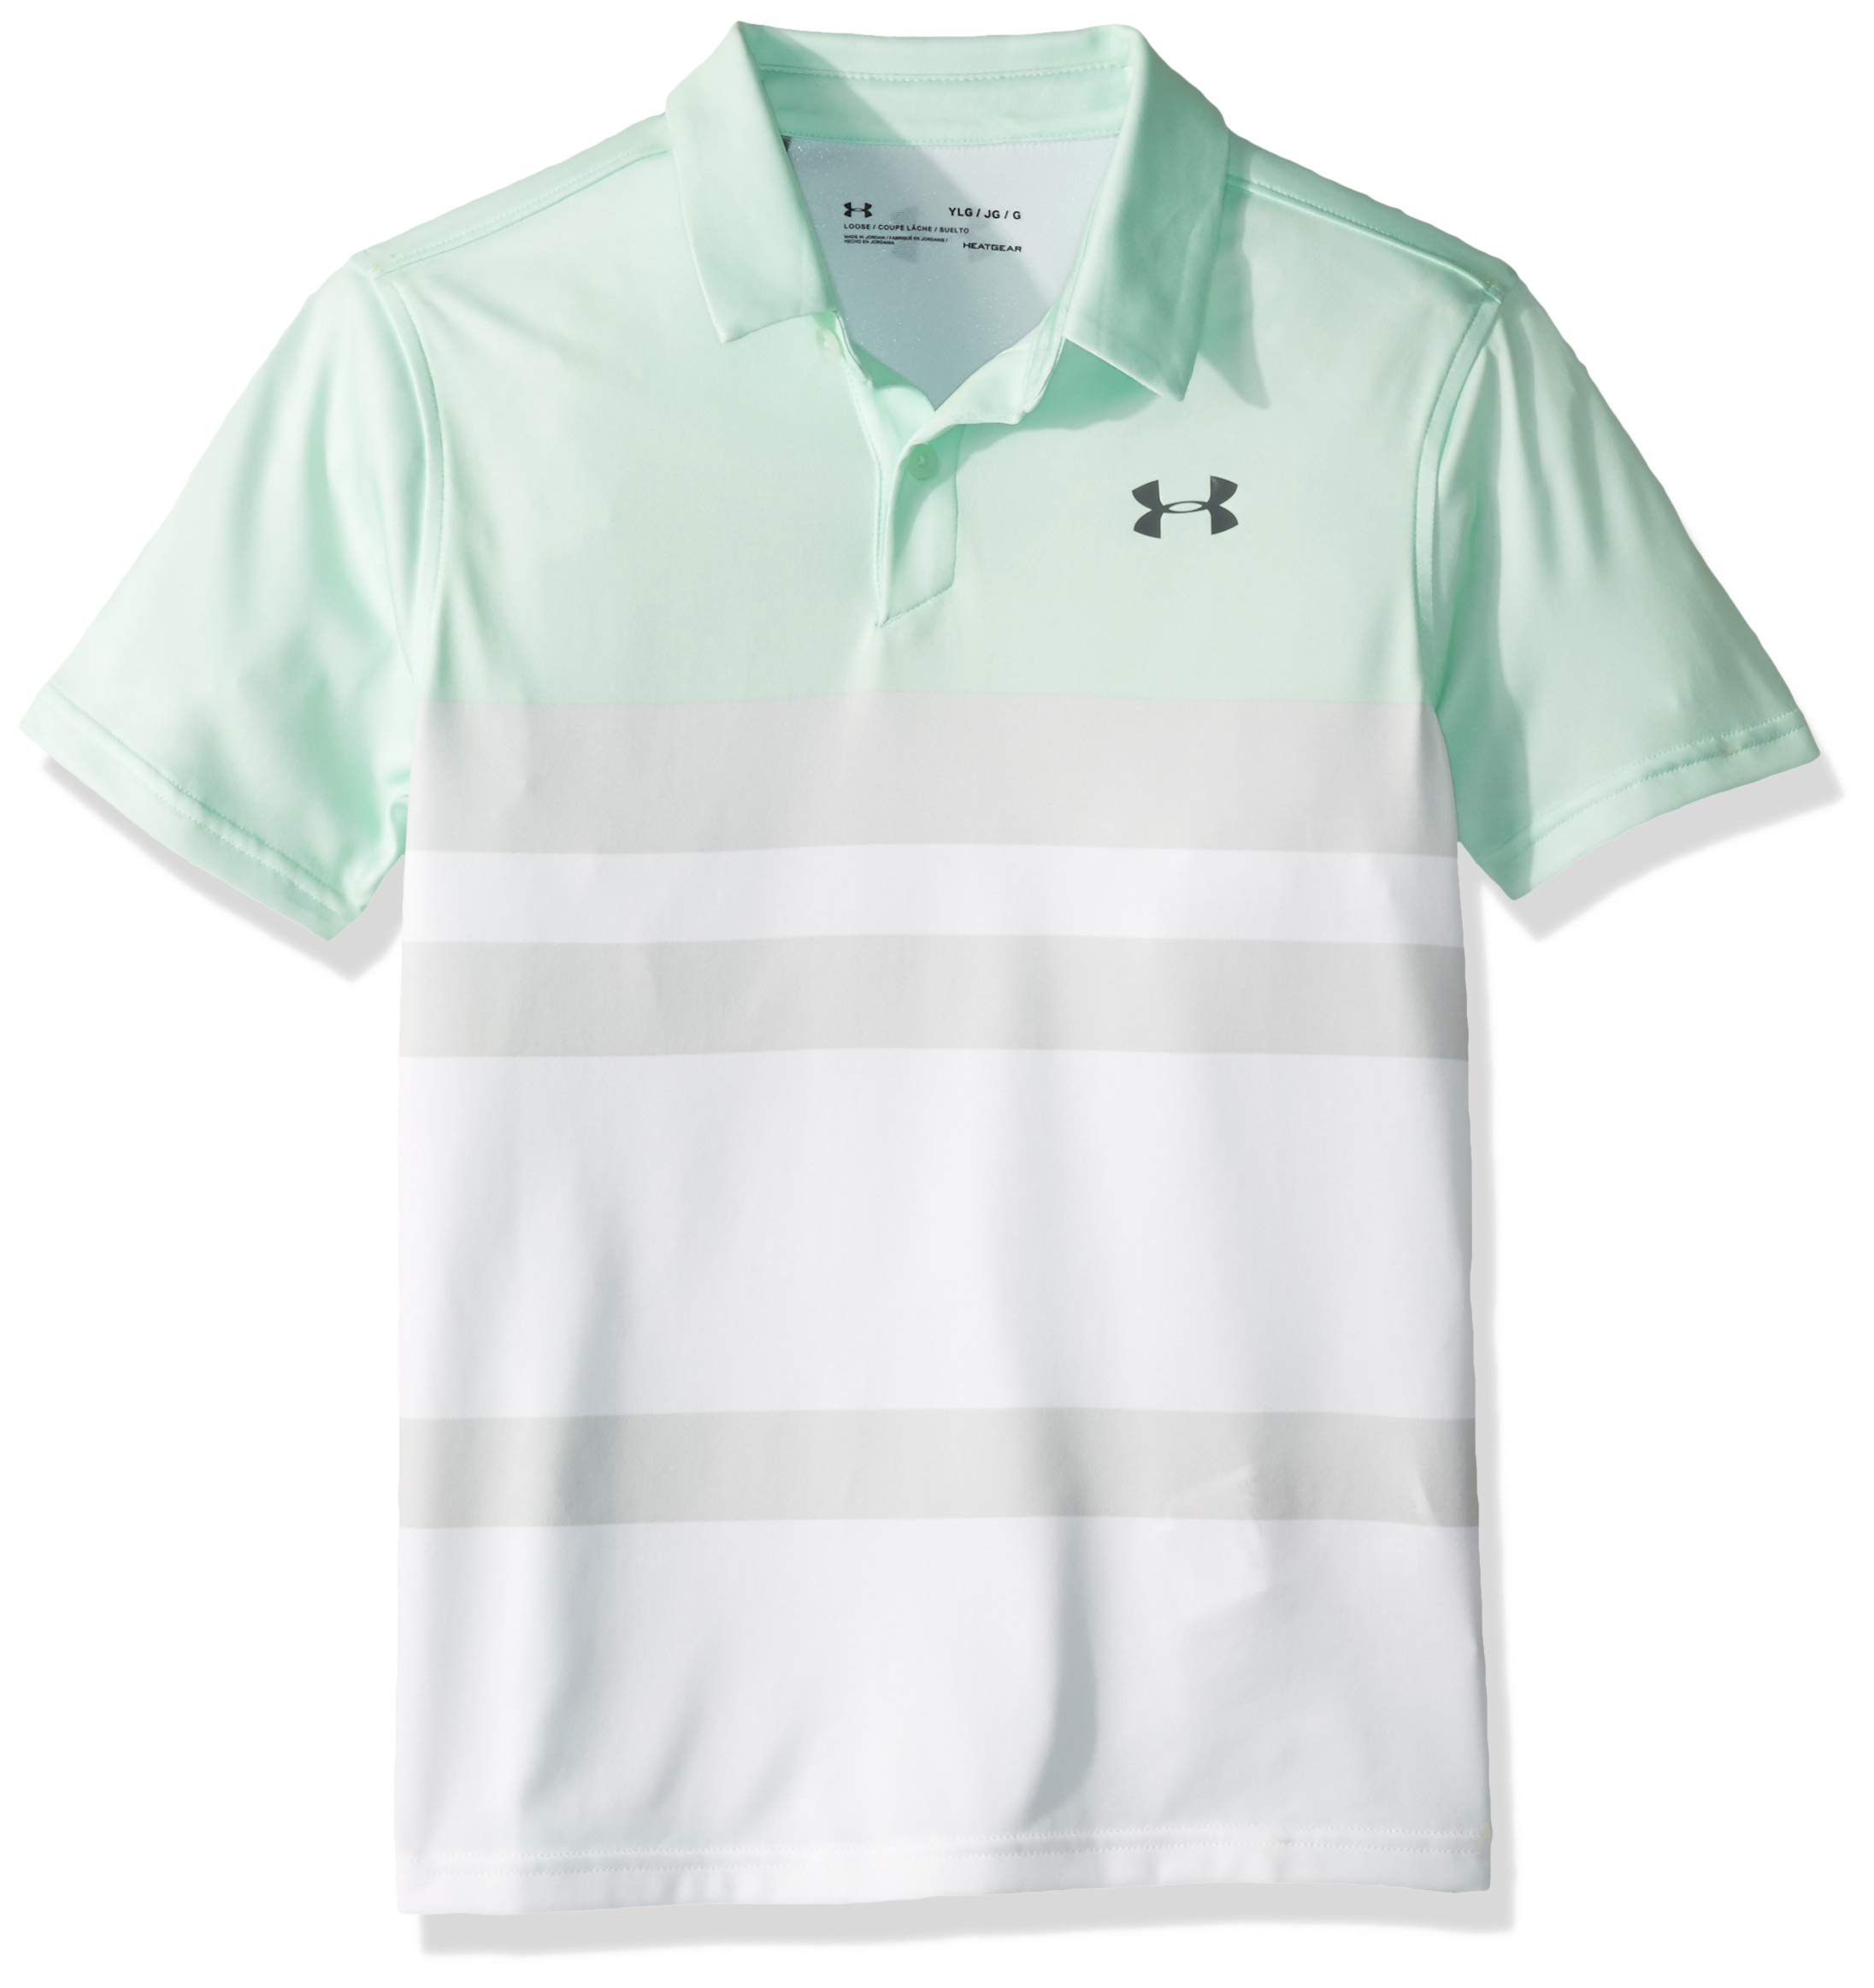 Under Armour Jordan Spieth 1st Major Saturday Polo, Aqua Foam//Pitch Gray, Youth X-Small by Under Armour